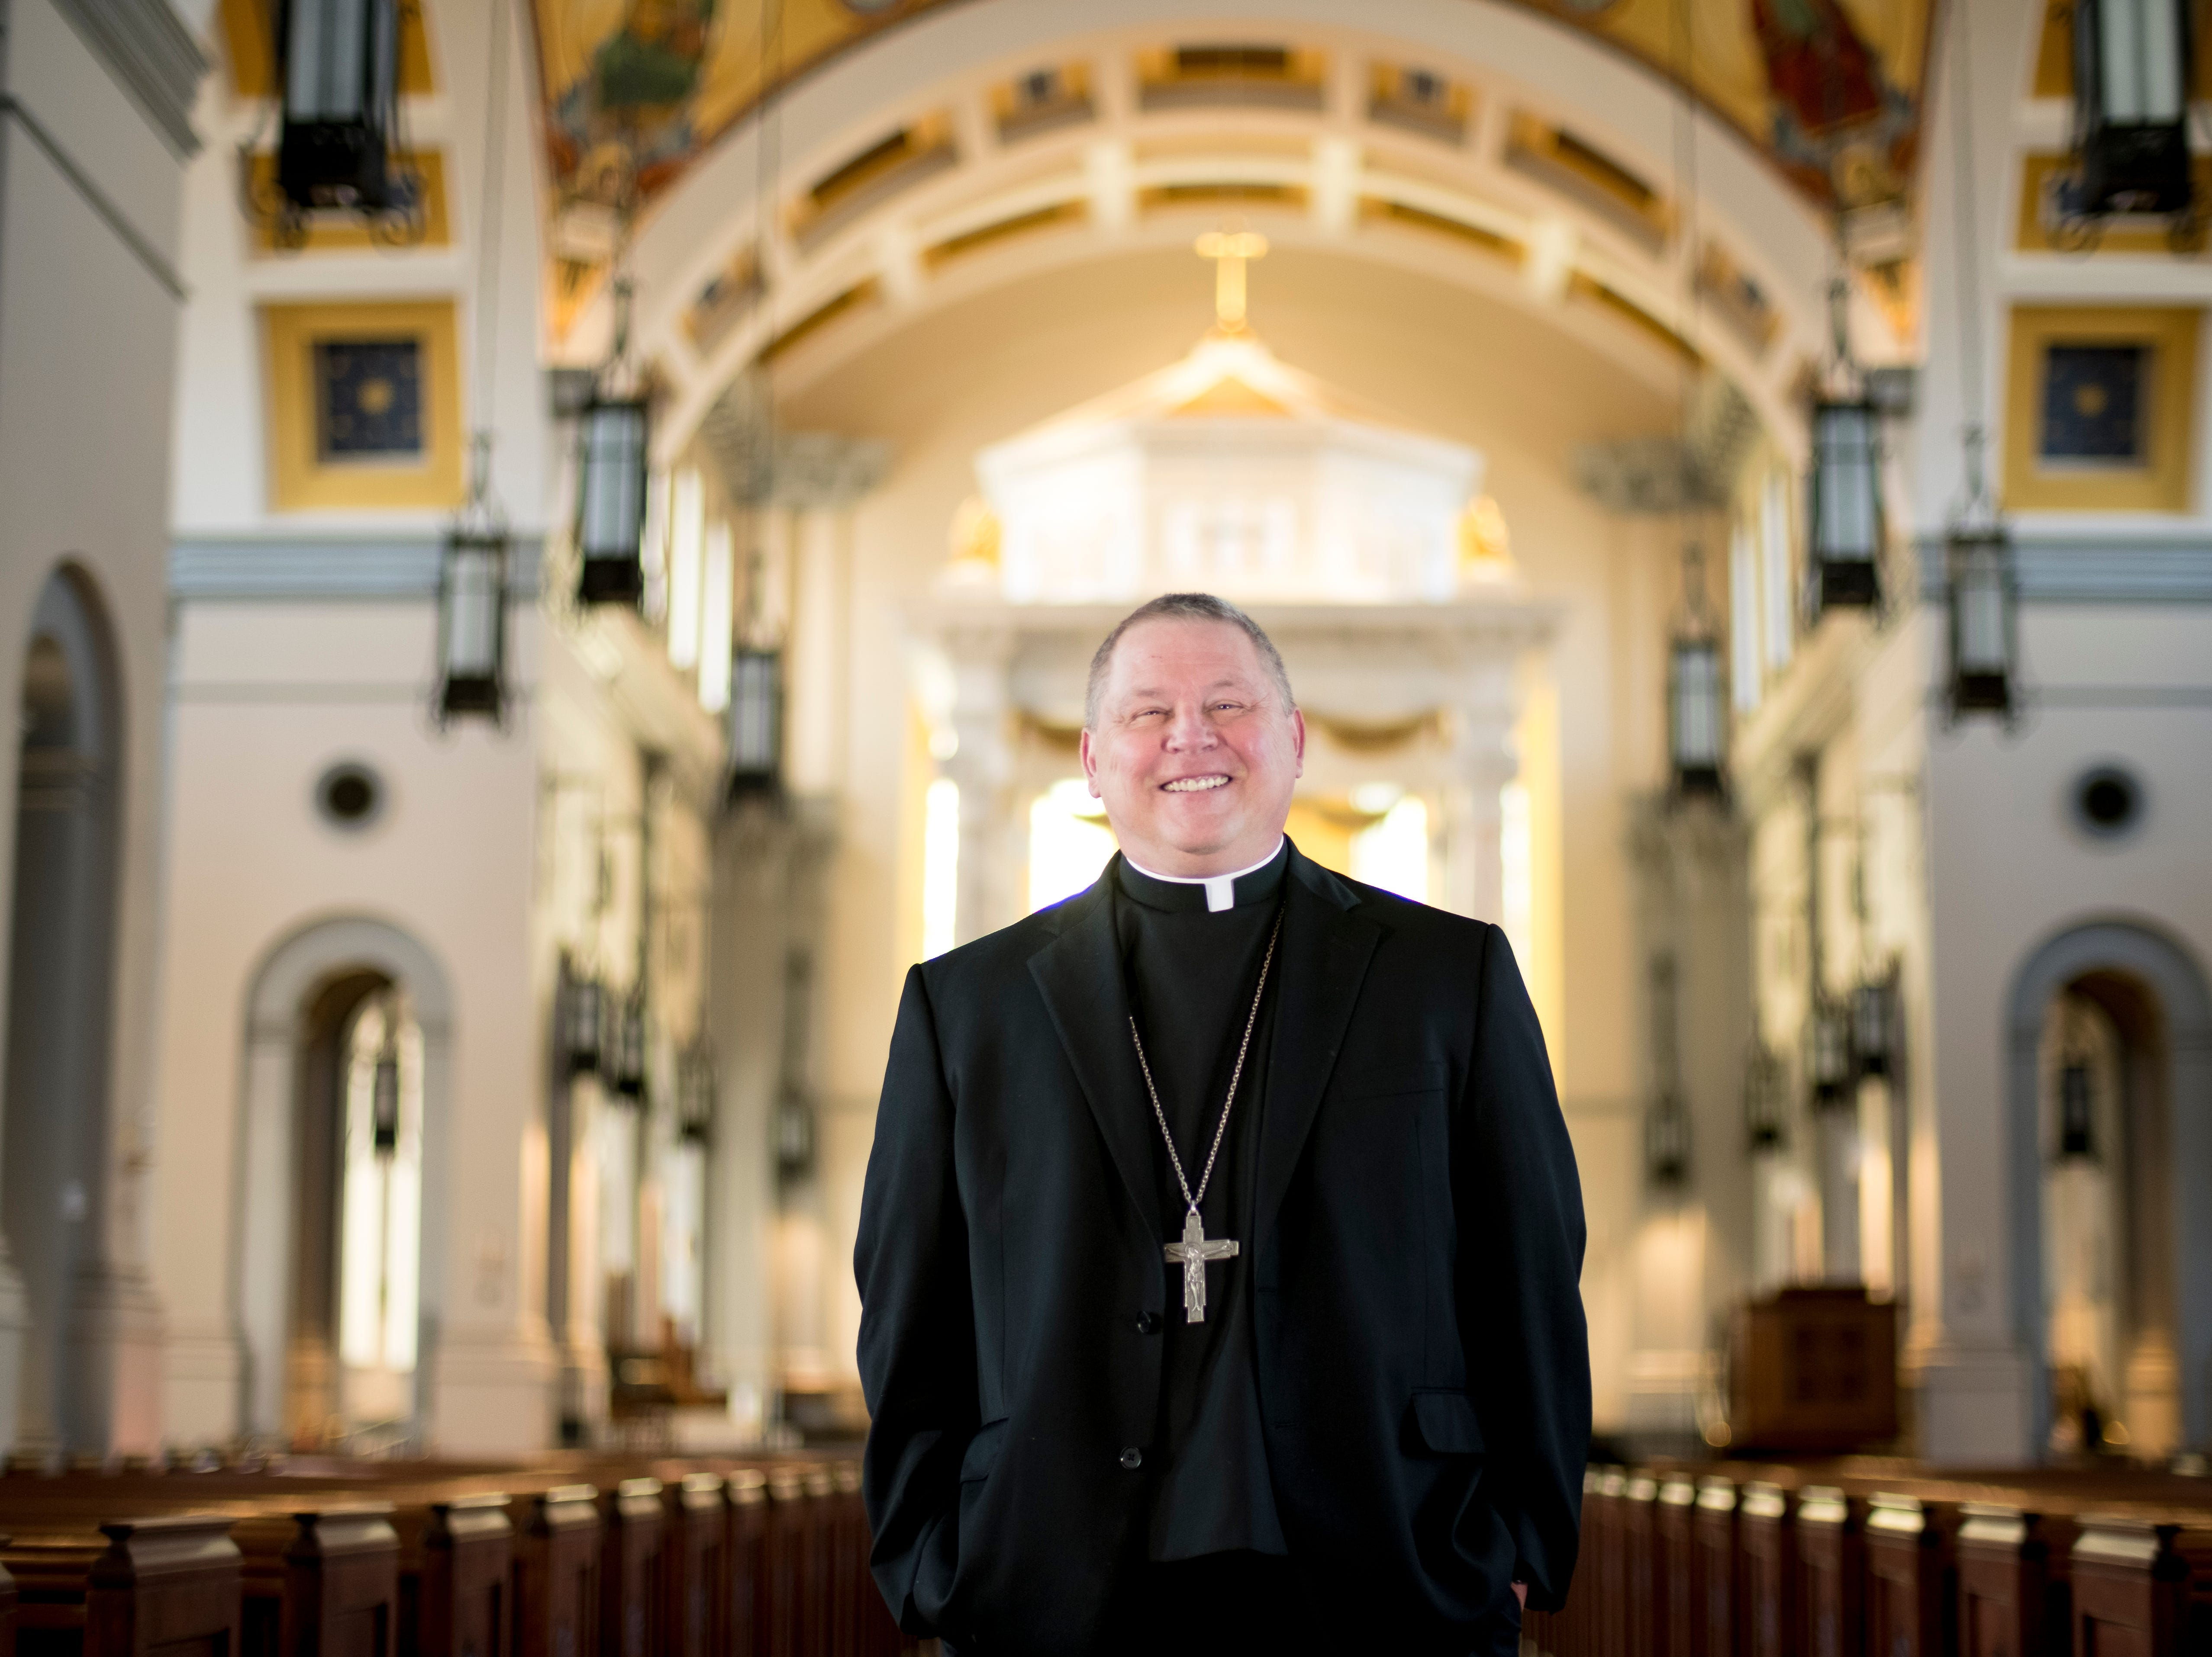 Richard Stika, bishop of the Diocese of Knoxville, poses for a portrait in Sacred Heart Cathedral in Knoxville, Tennessee on Friday, February 8, 2019. Bishop Stika's stance on the New York abortion law got him national attention when he tweeted saying the stateÕs governor should be excommunicated.